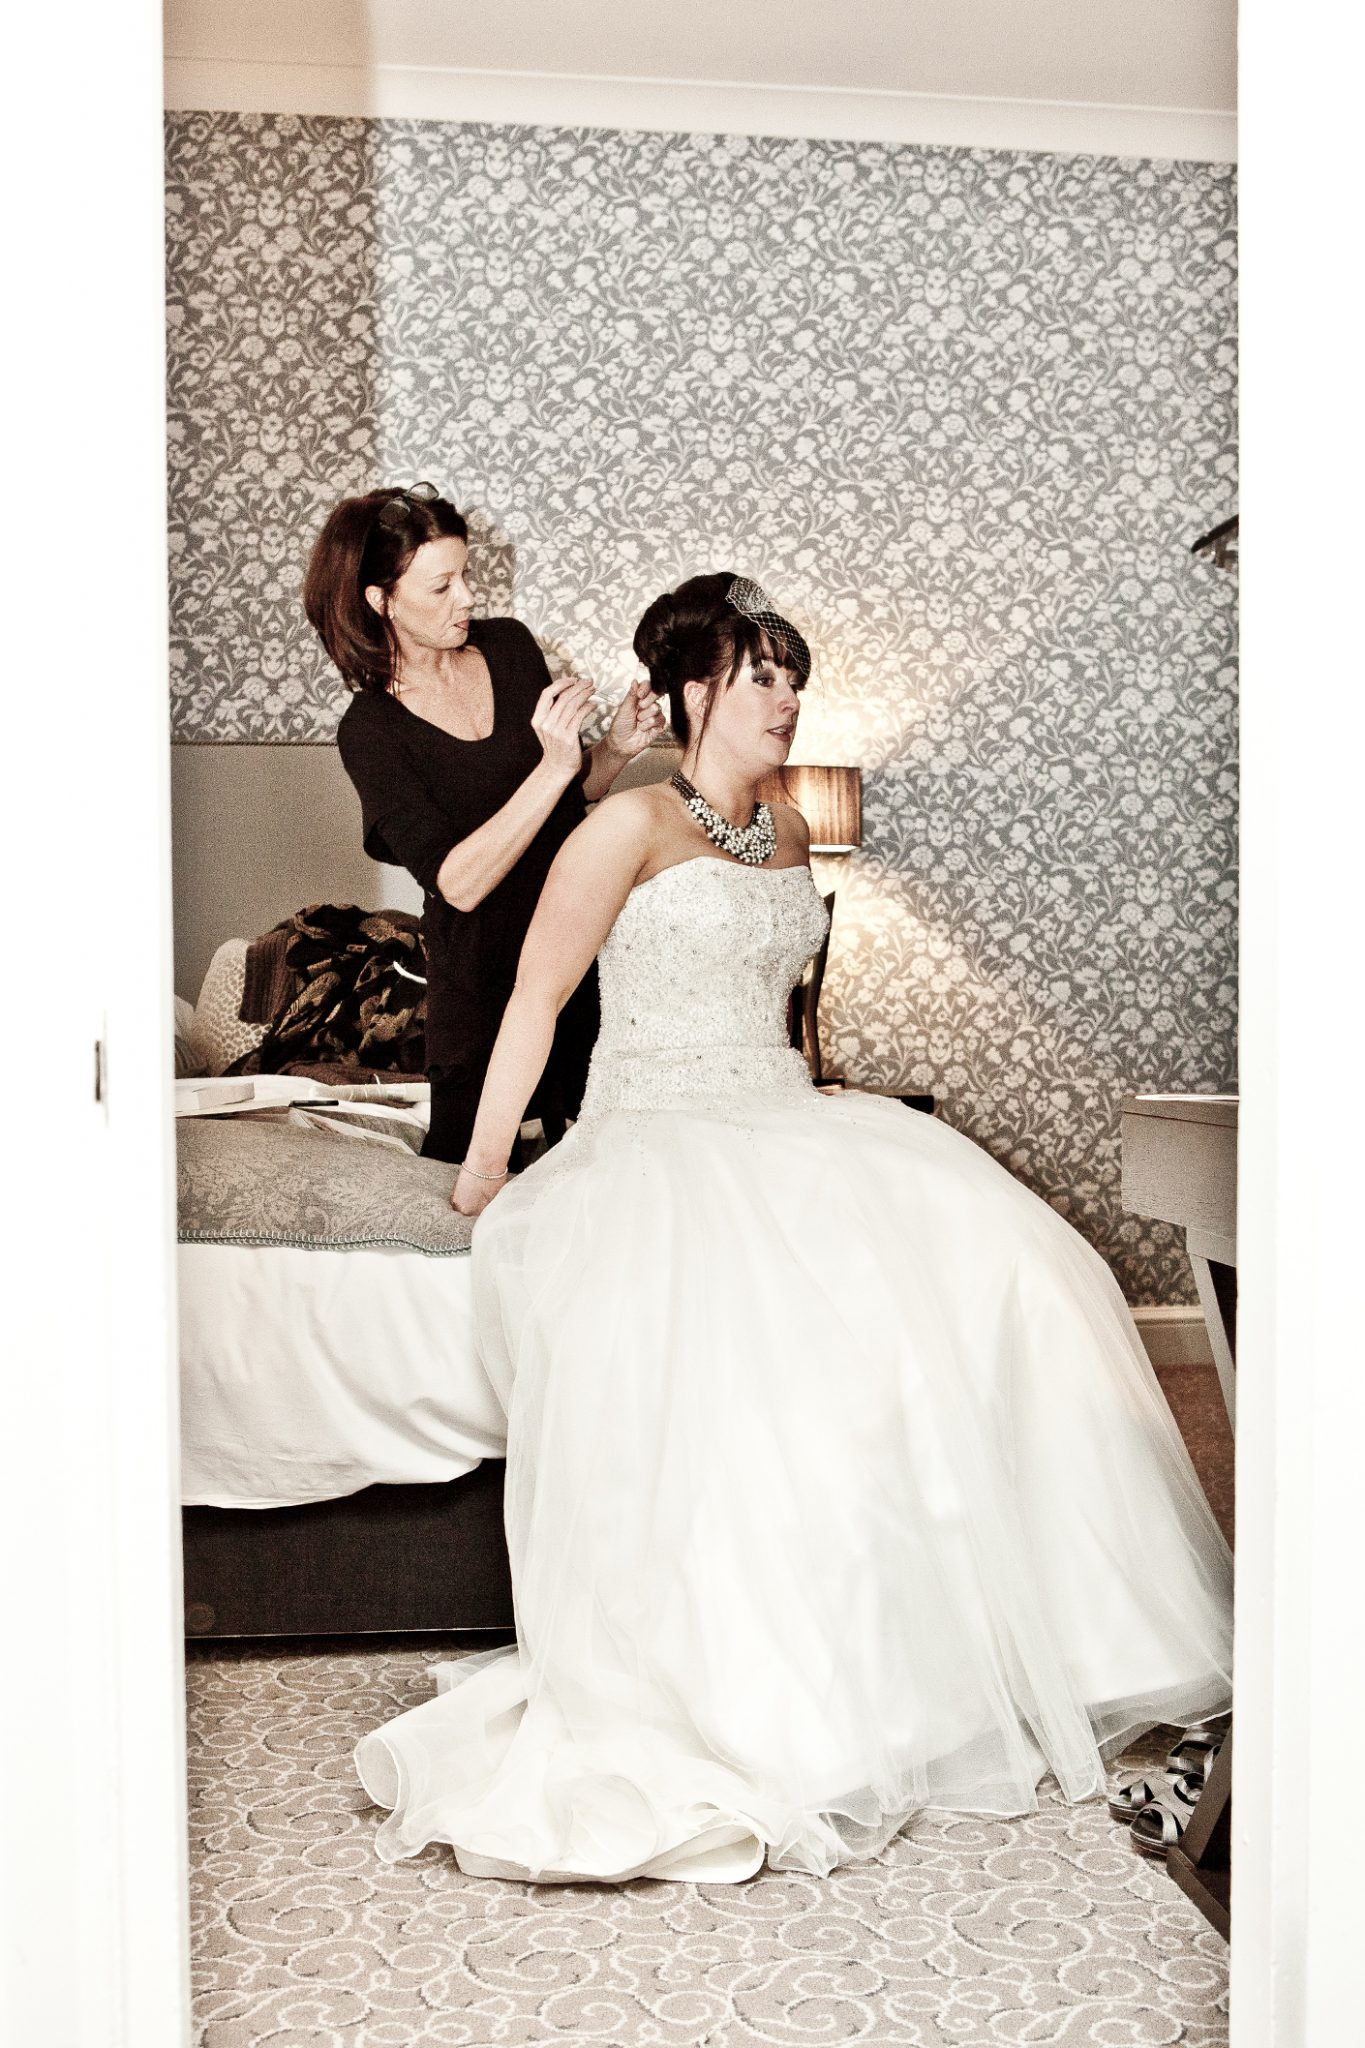 wedding-photography-of-the-bride-getting-ready-at-mpttram-hall-cheshire